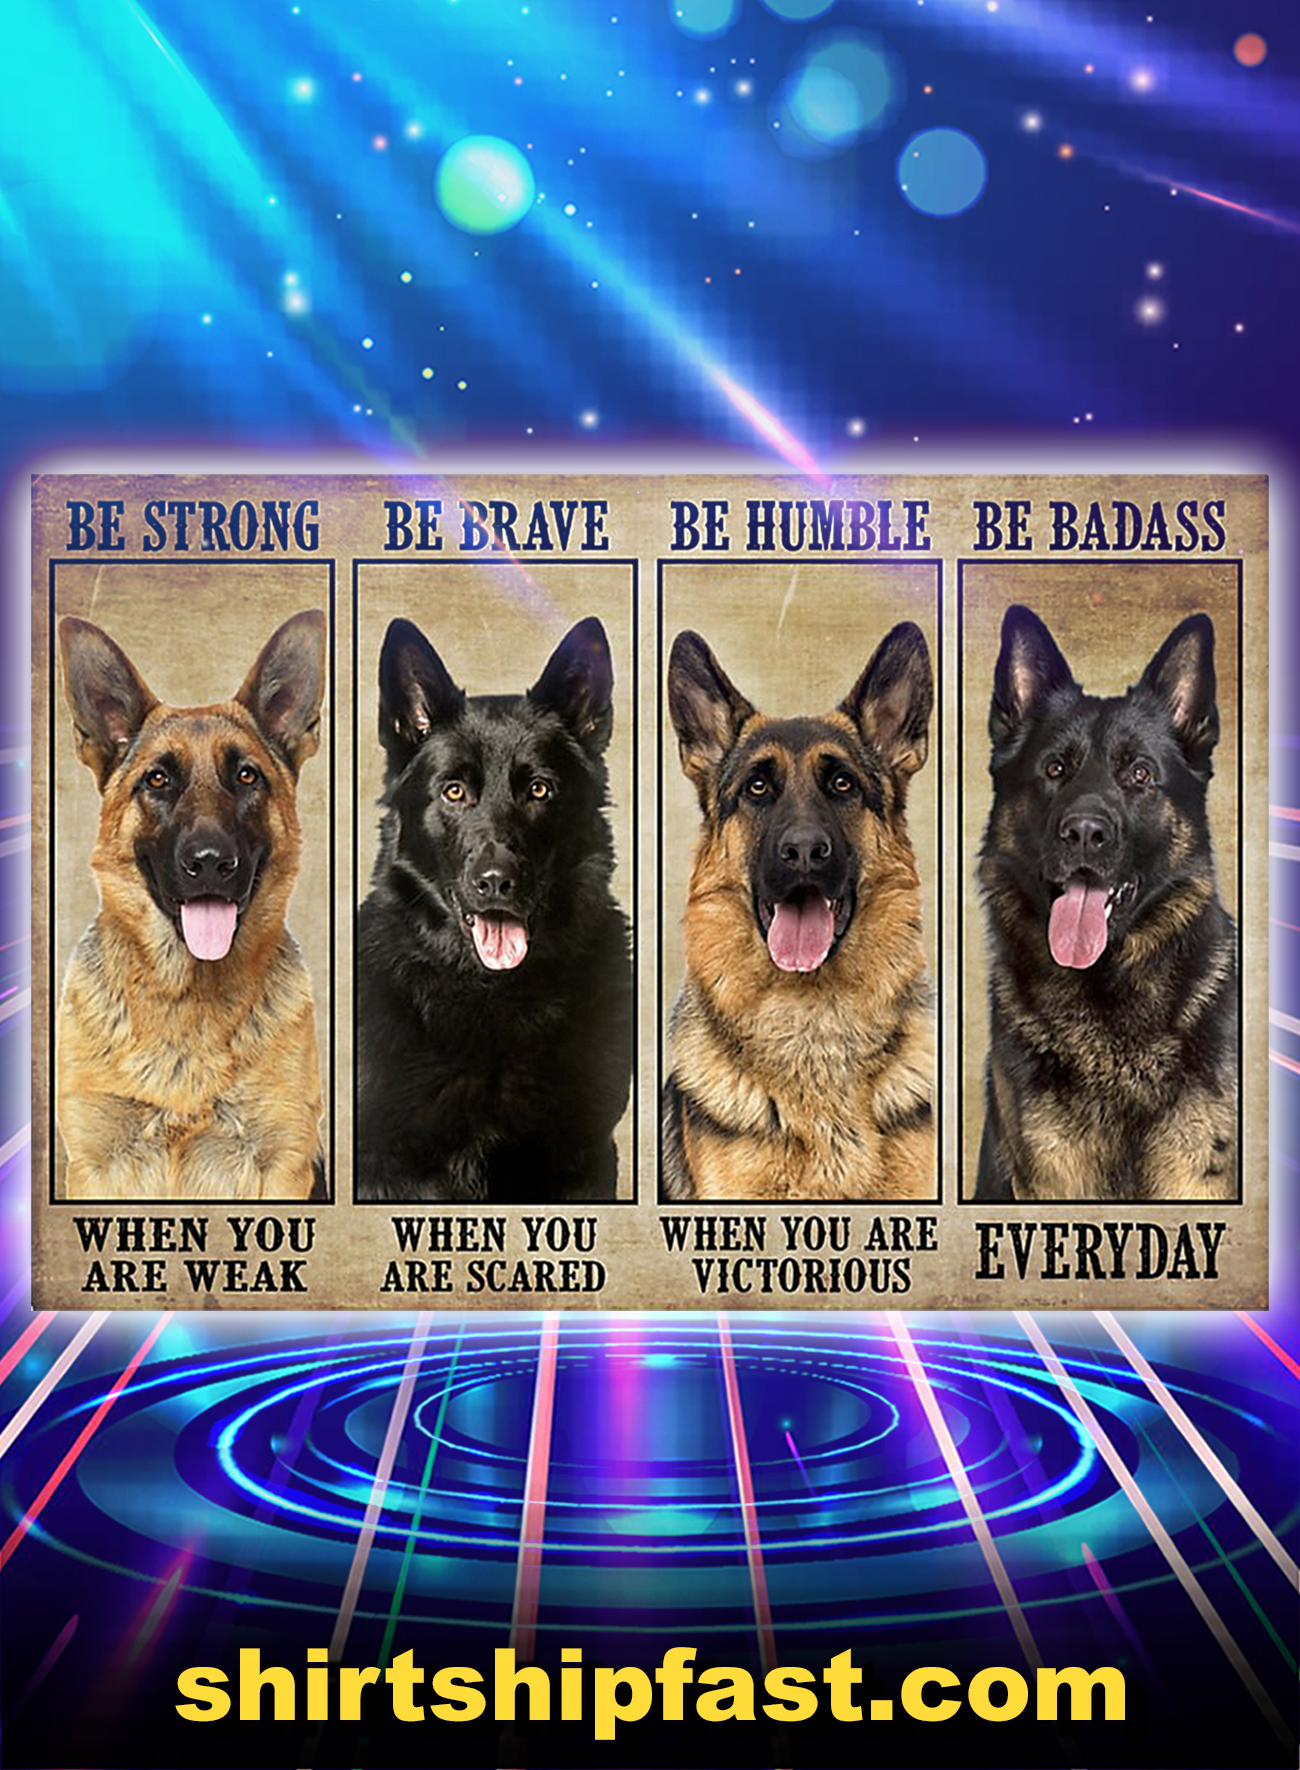 German Sherpherd be strong be brave be humble be badass poster - A1